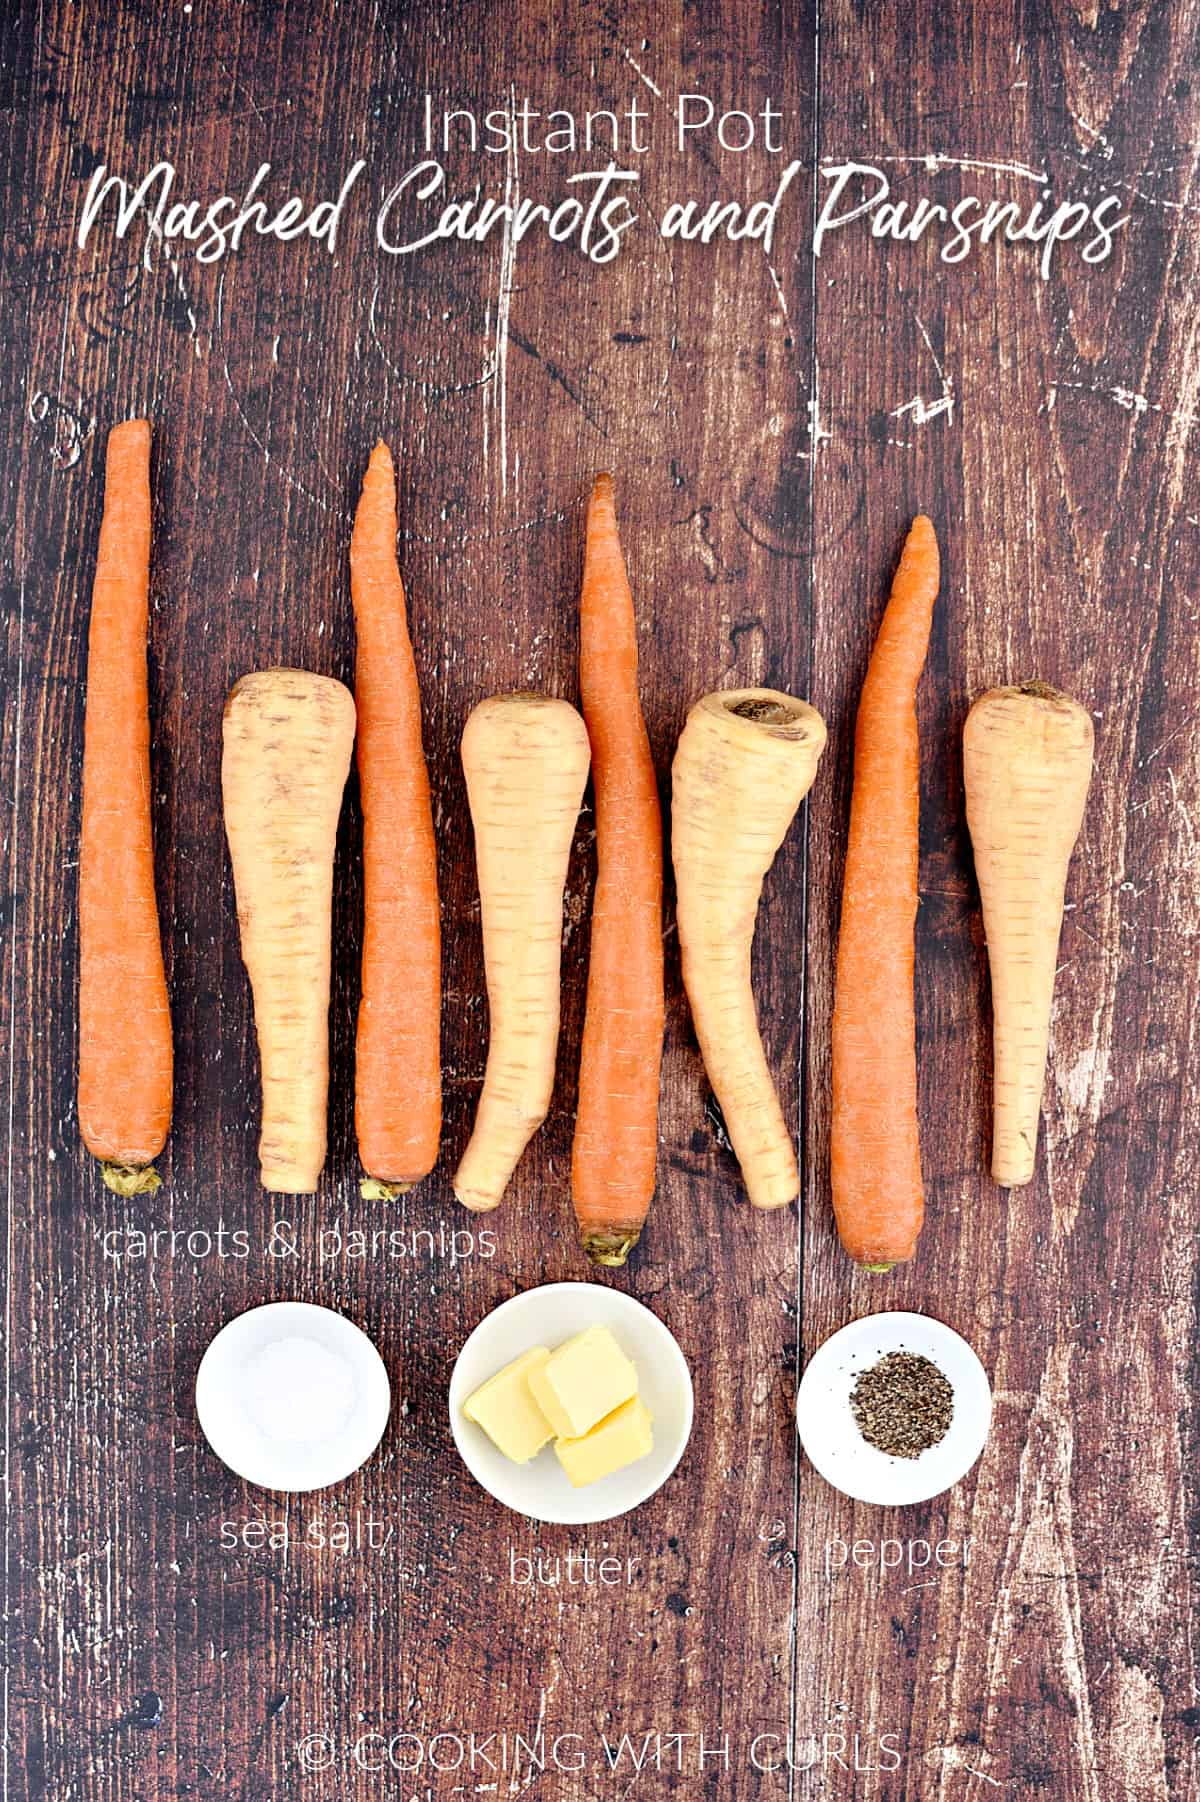 Four carrots, four parsnips, salt, butter pats and pepper in small white bowls.